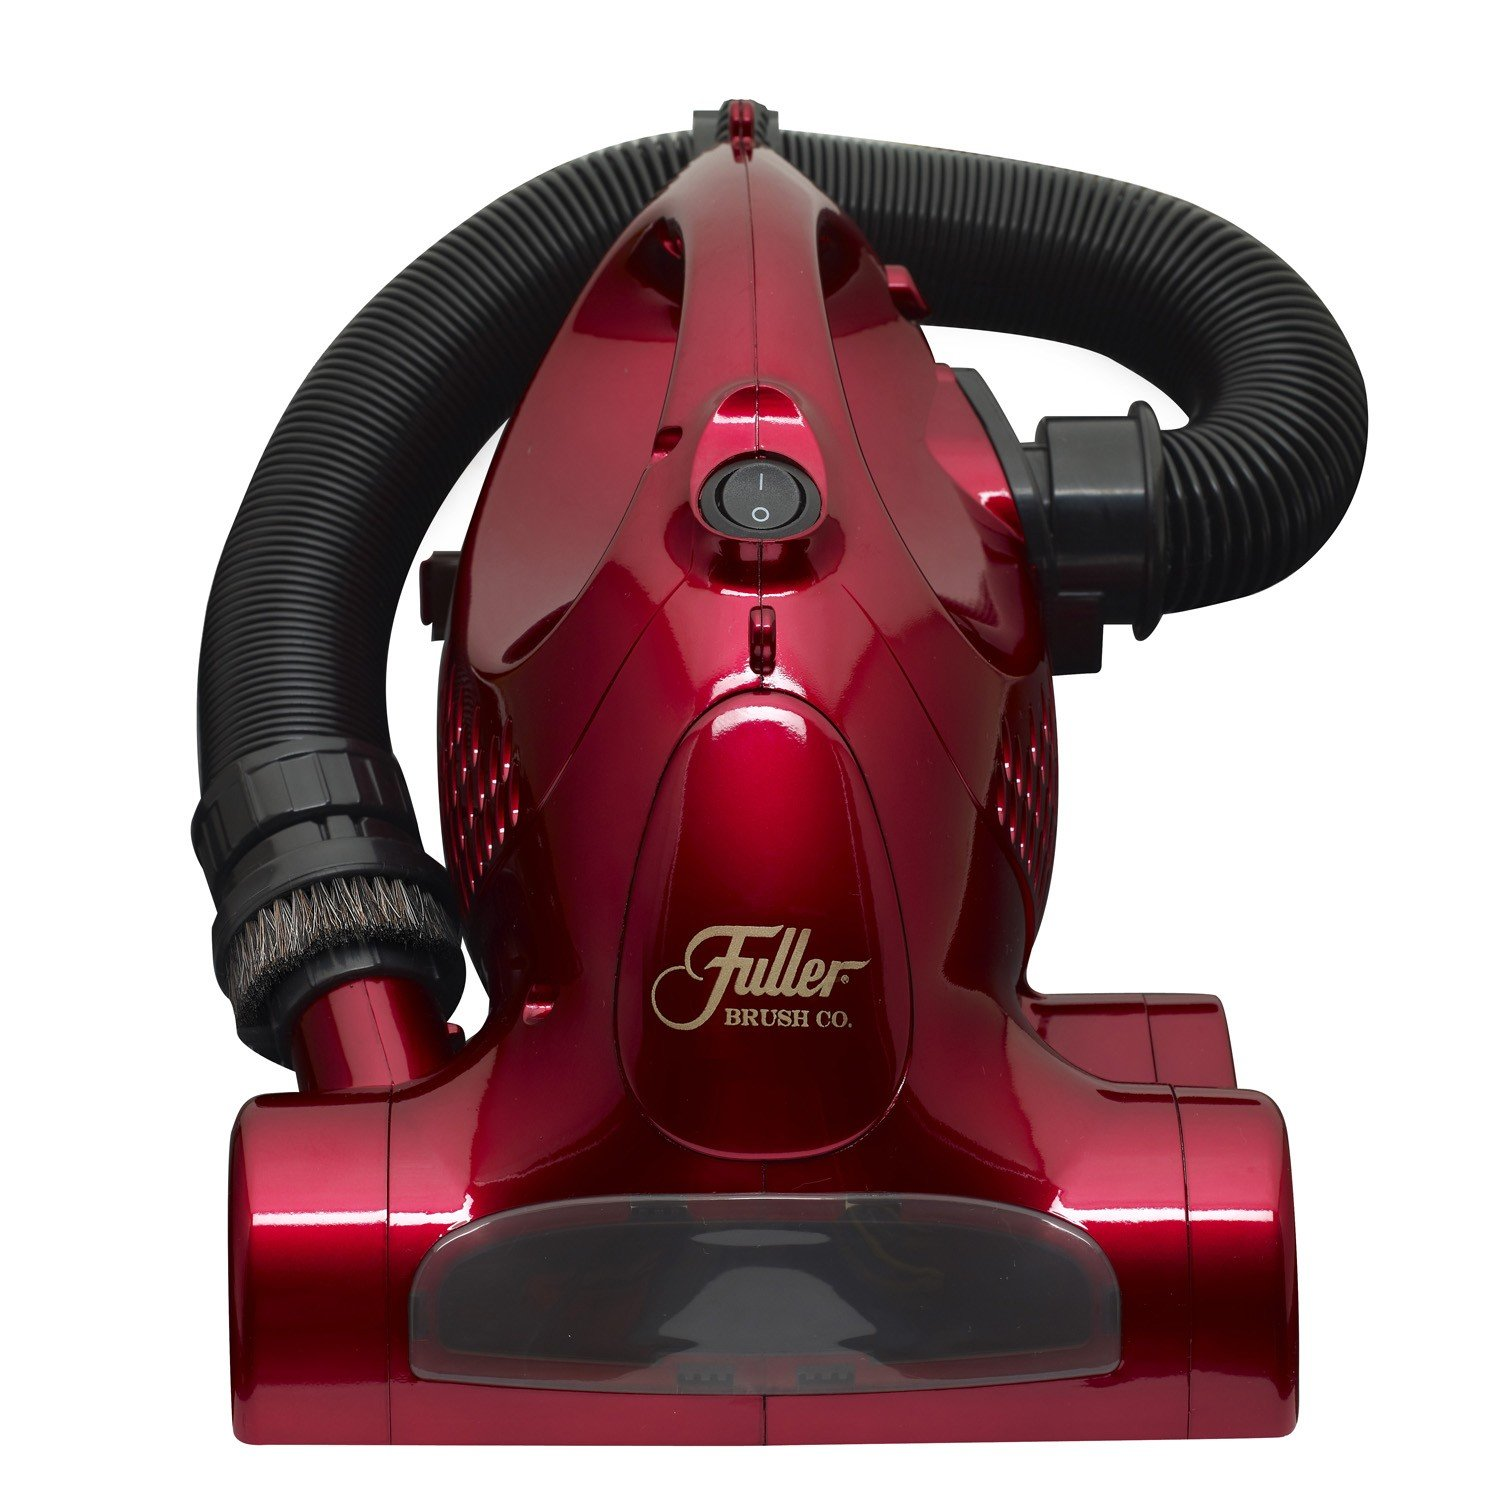 Fuller Power Maid Hand-Held Vacuum